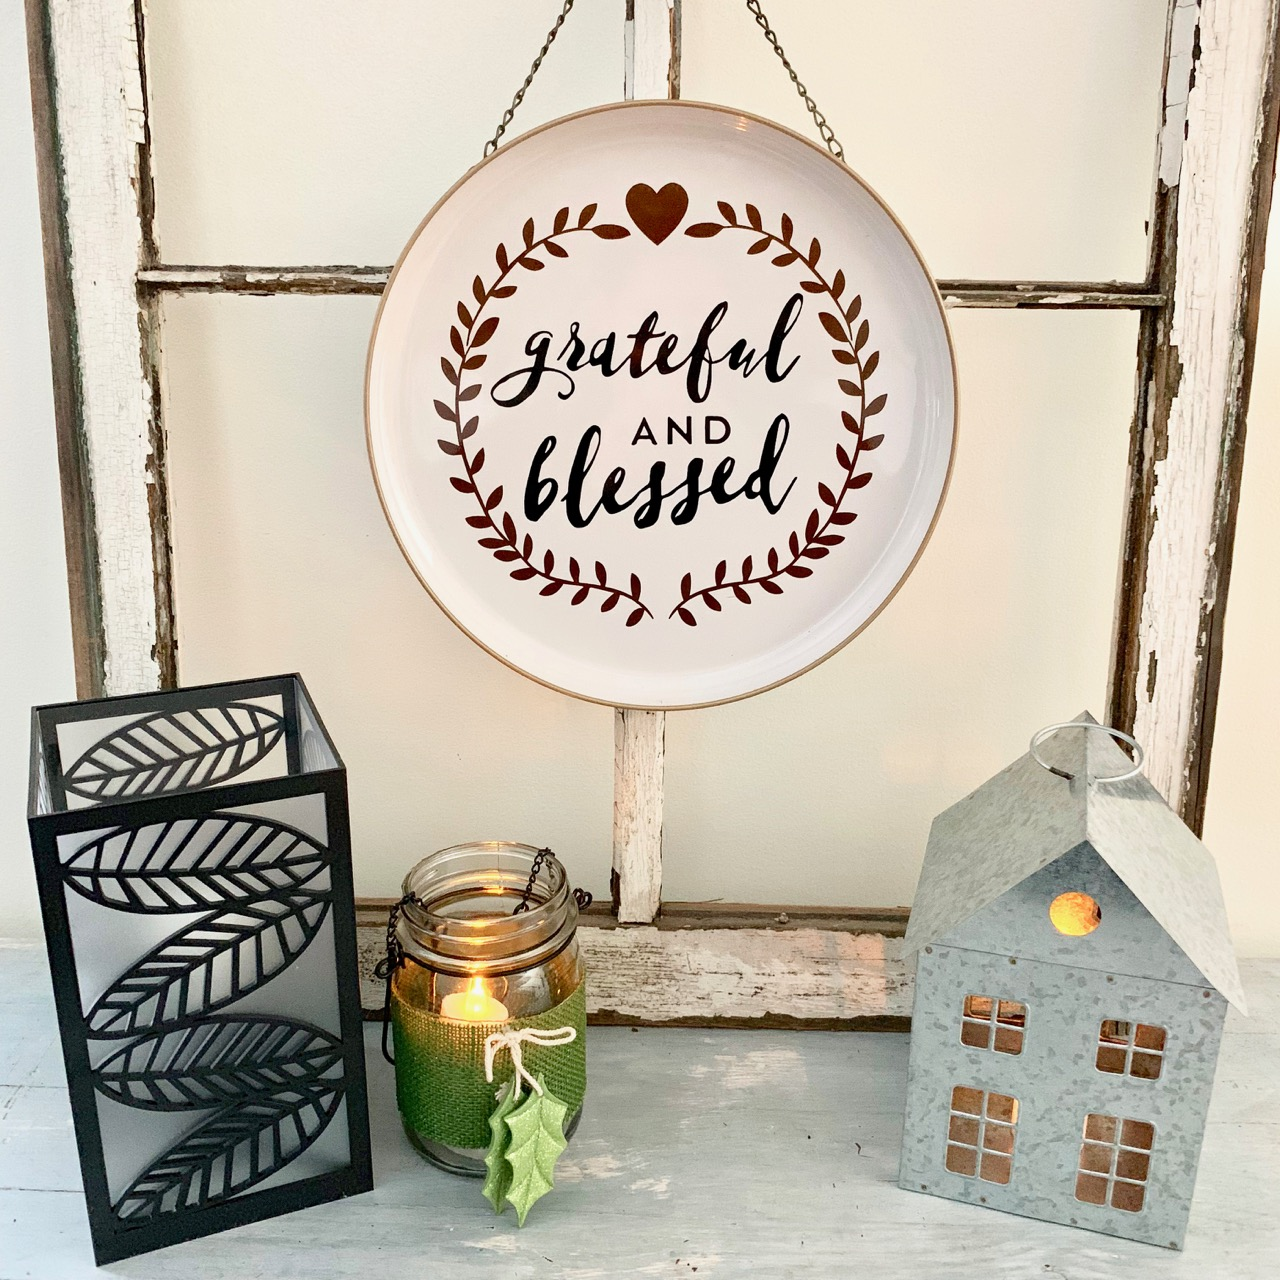 At Home Home Decor: Home Decor From Dollar General